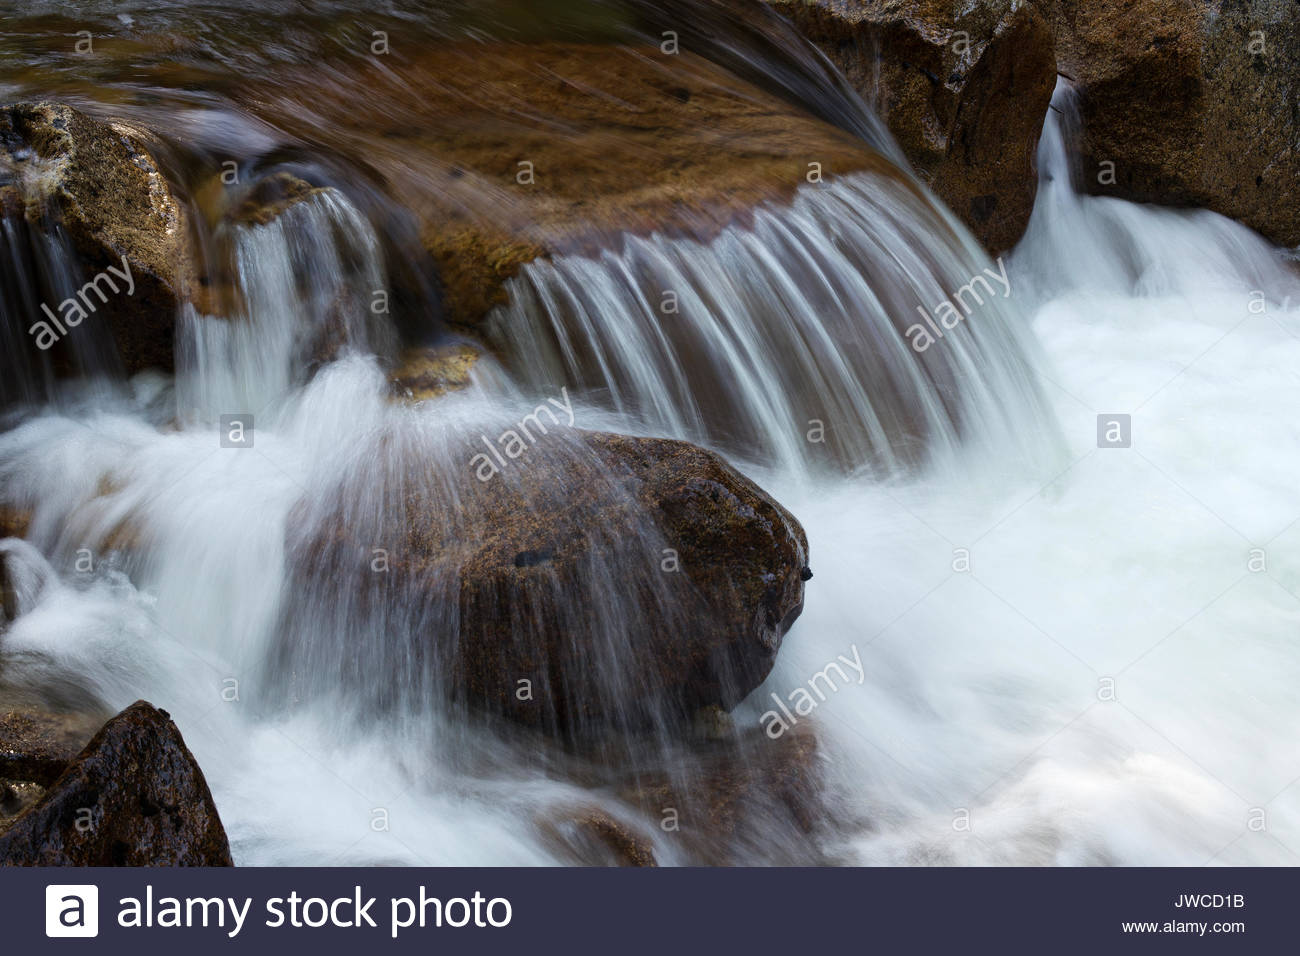 Close up of cascading and swiftly flowing currents in Tenaya Creek. - Stock Image